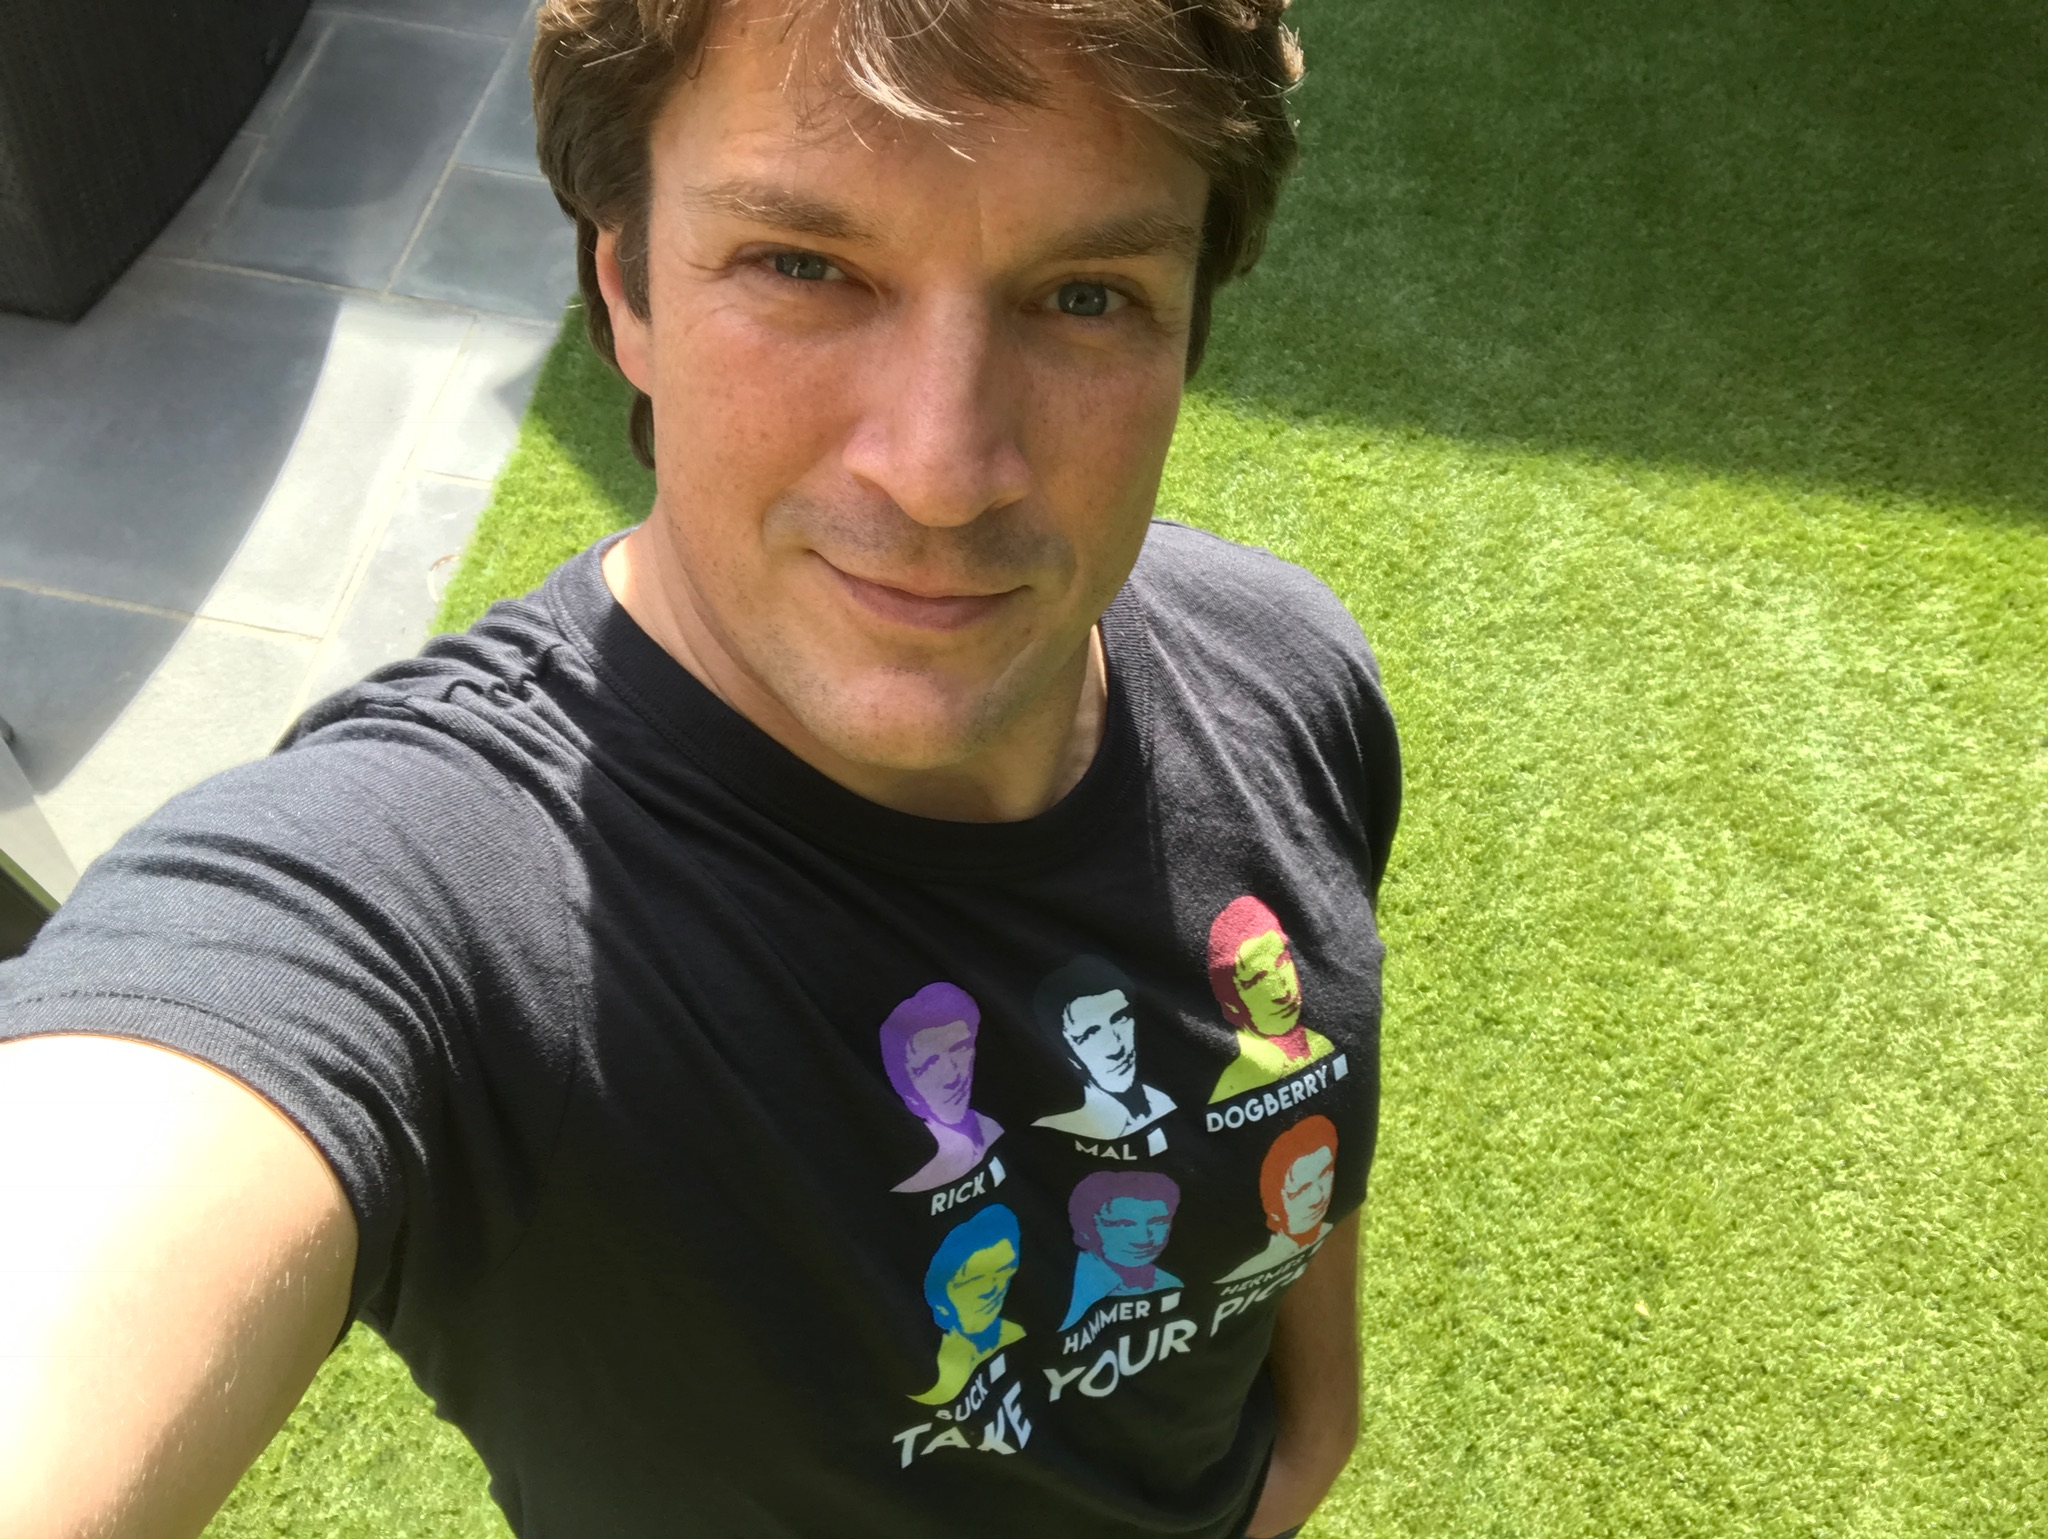 Nathan Fillion t-shirt for charity 2016-11-14